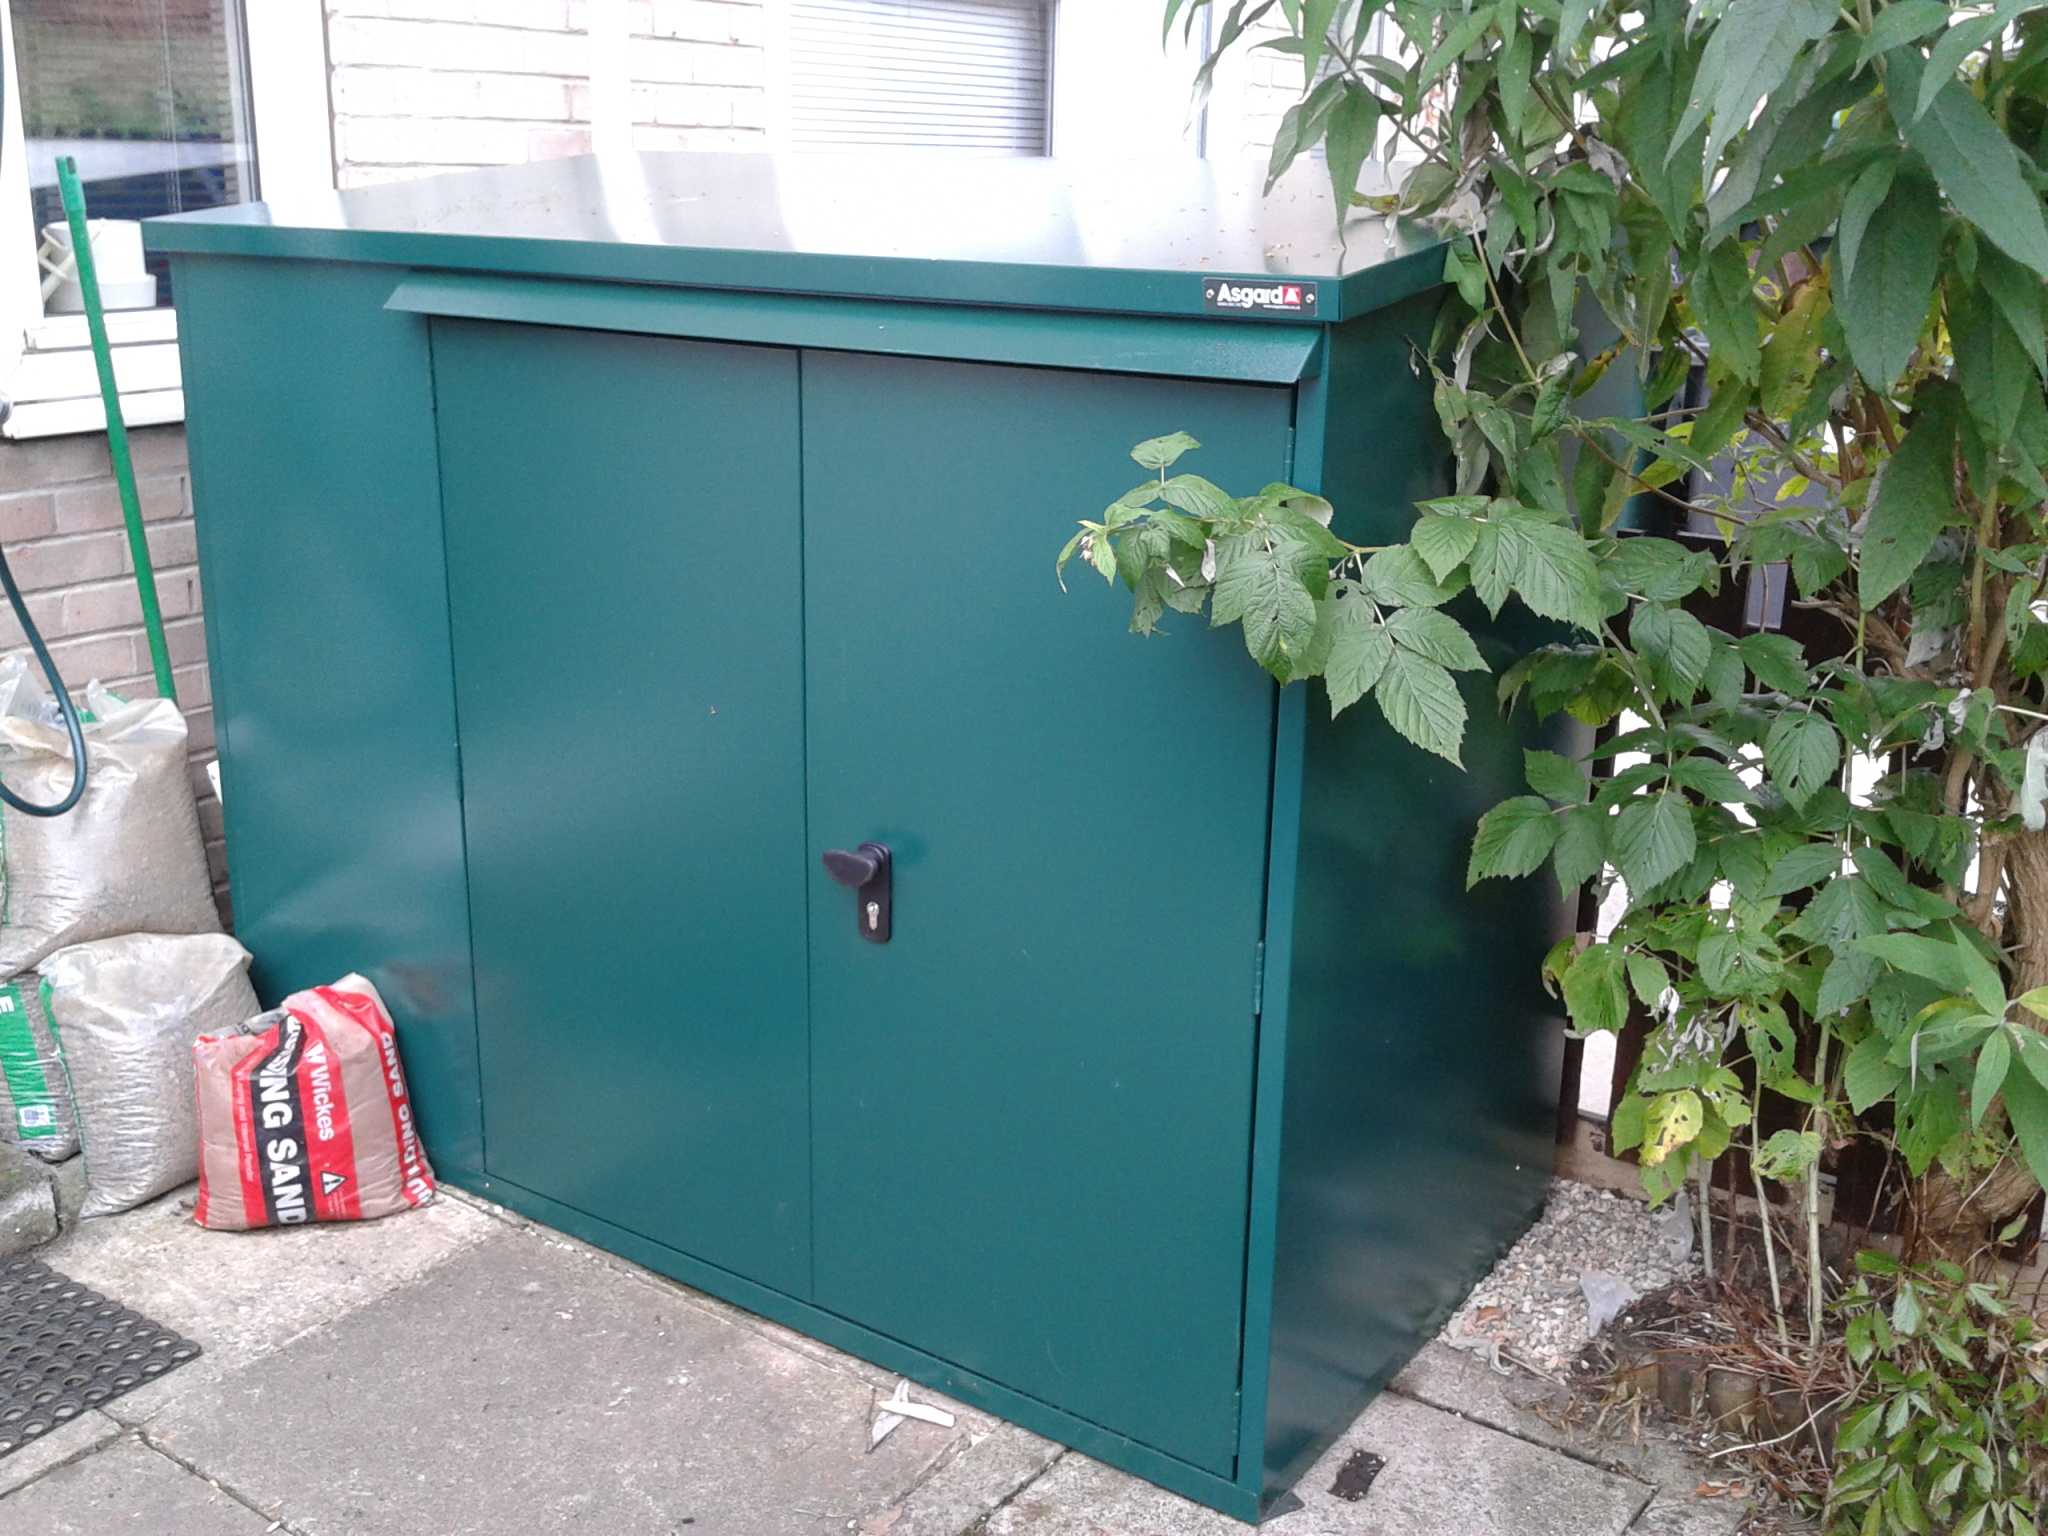 Garden bike shed for storing 3 bikes